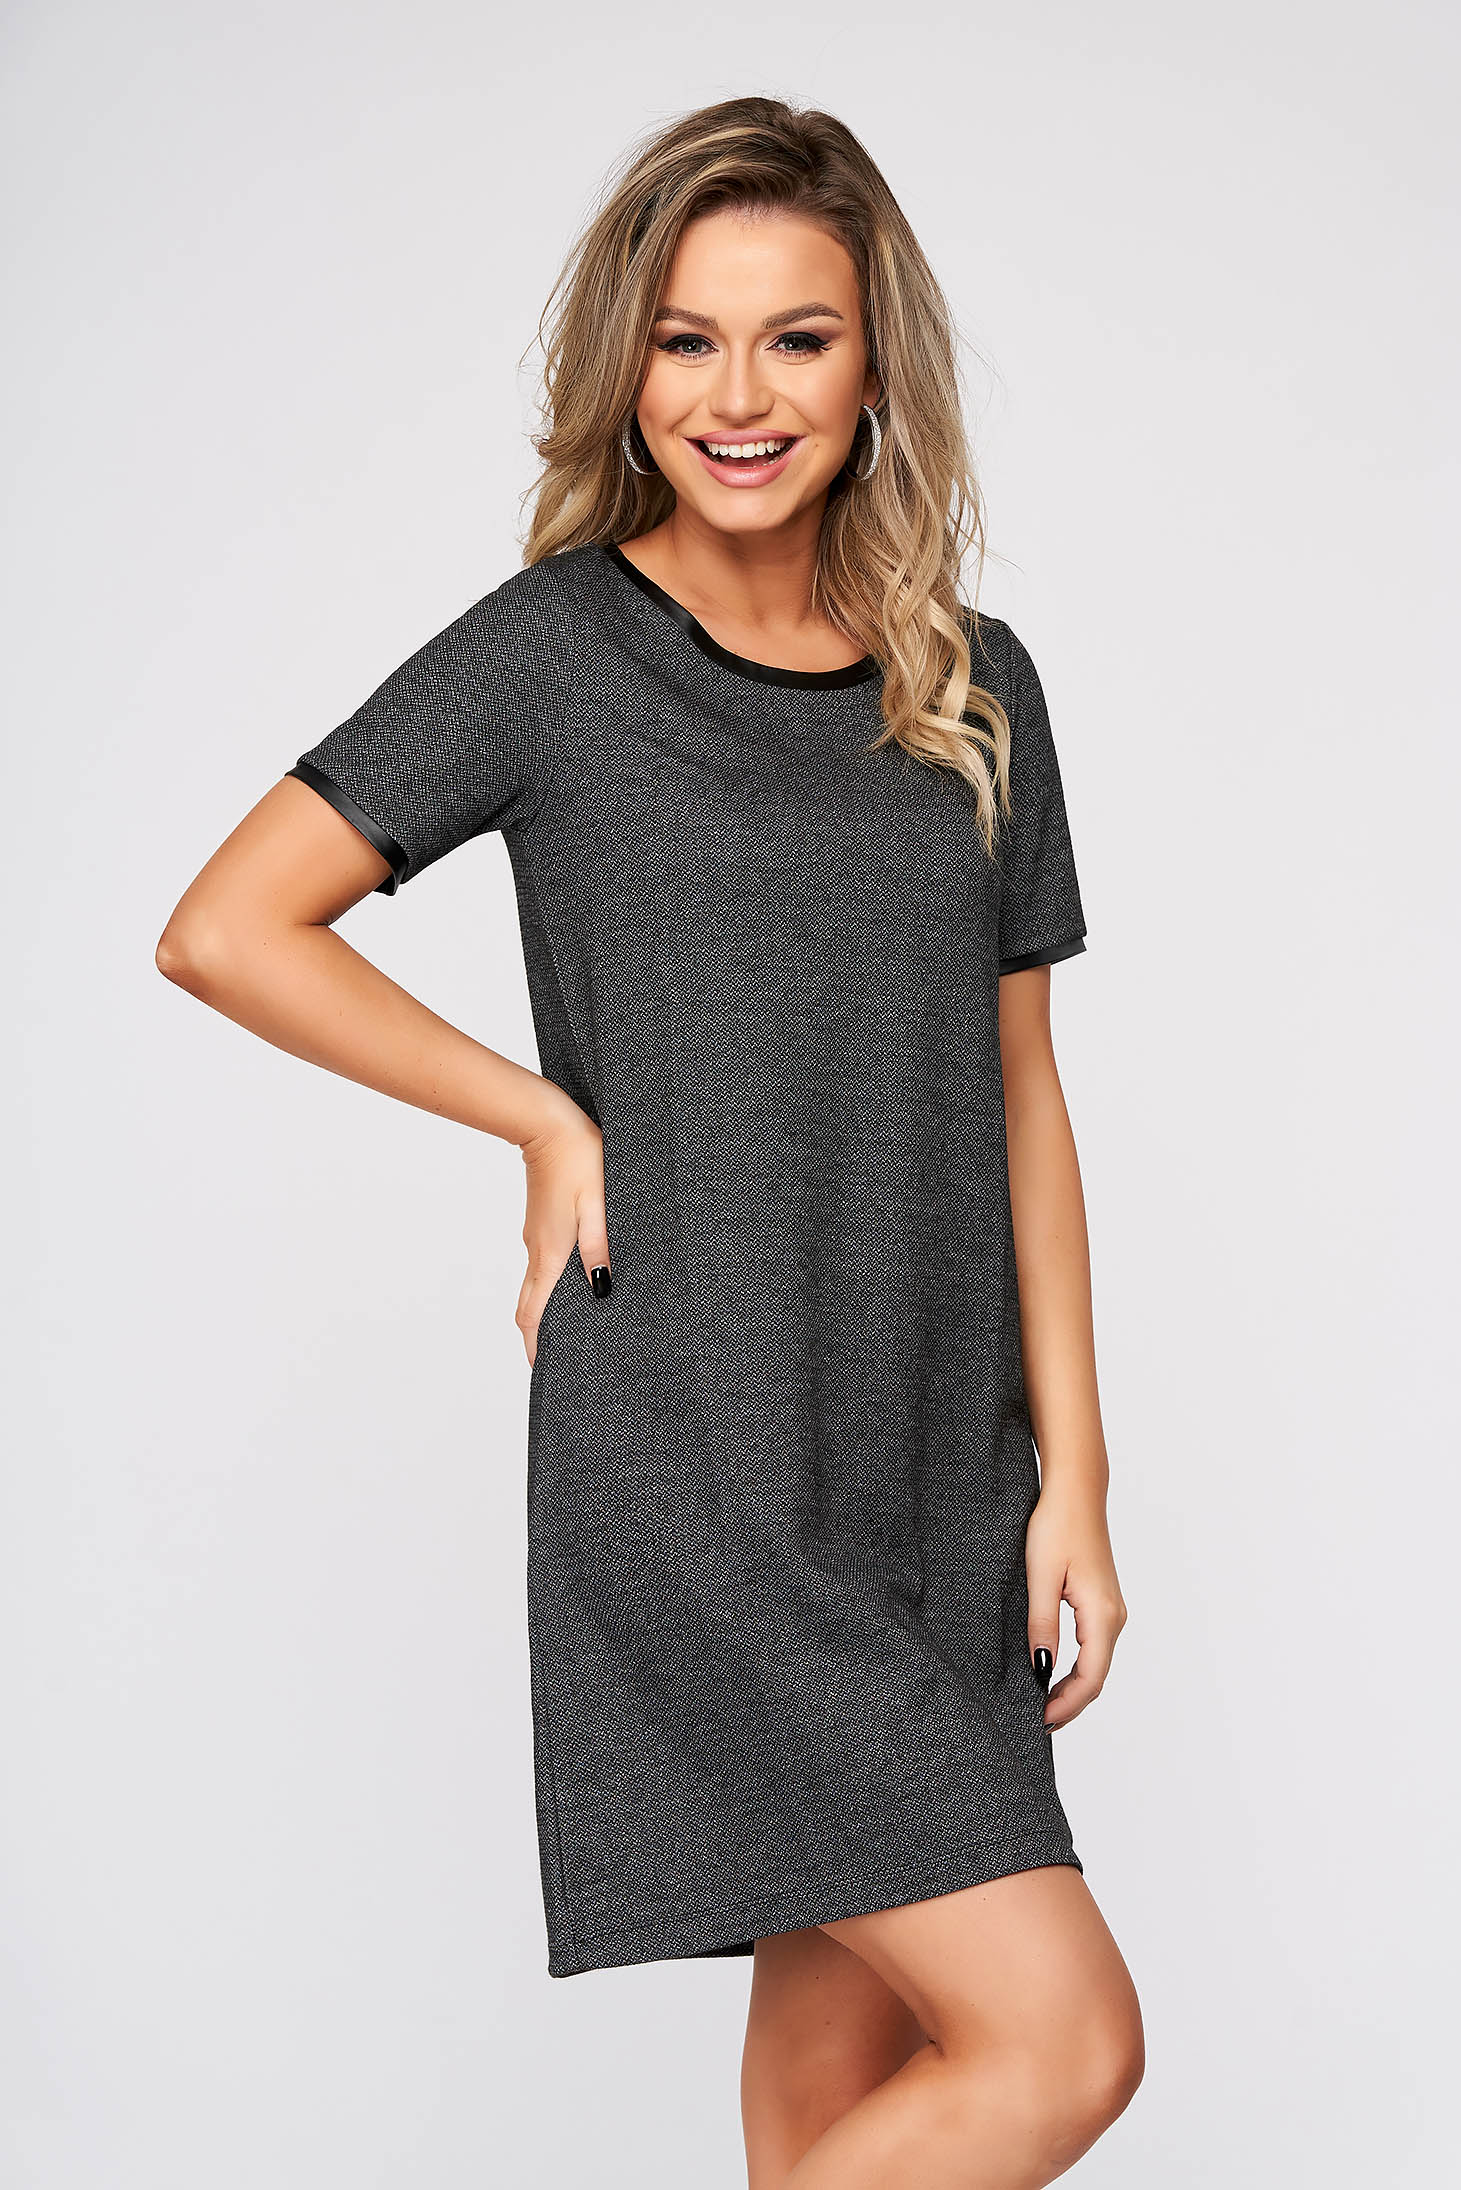 Black dress casual with easy cut short sleeve jersey